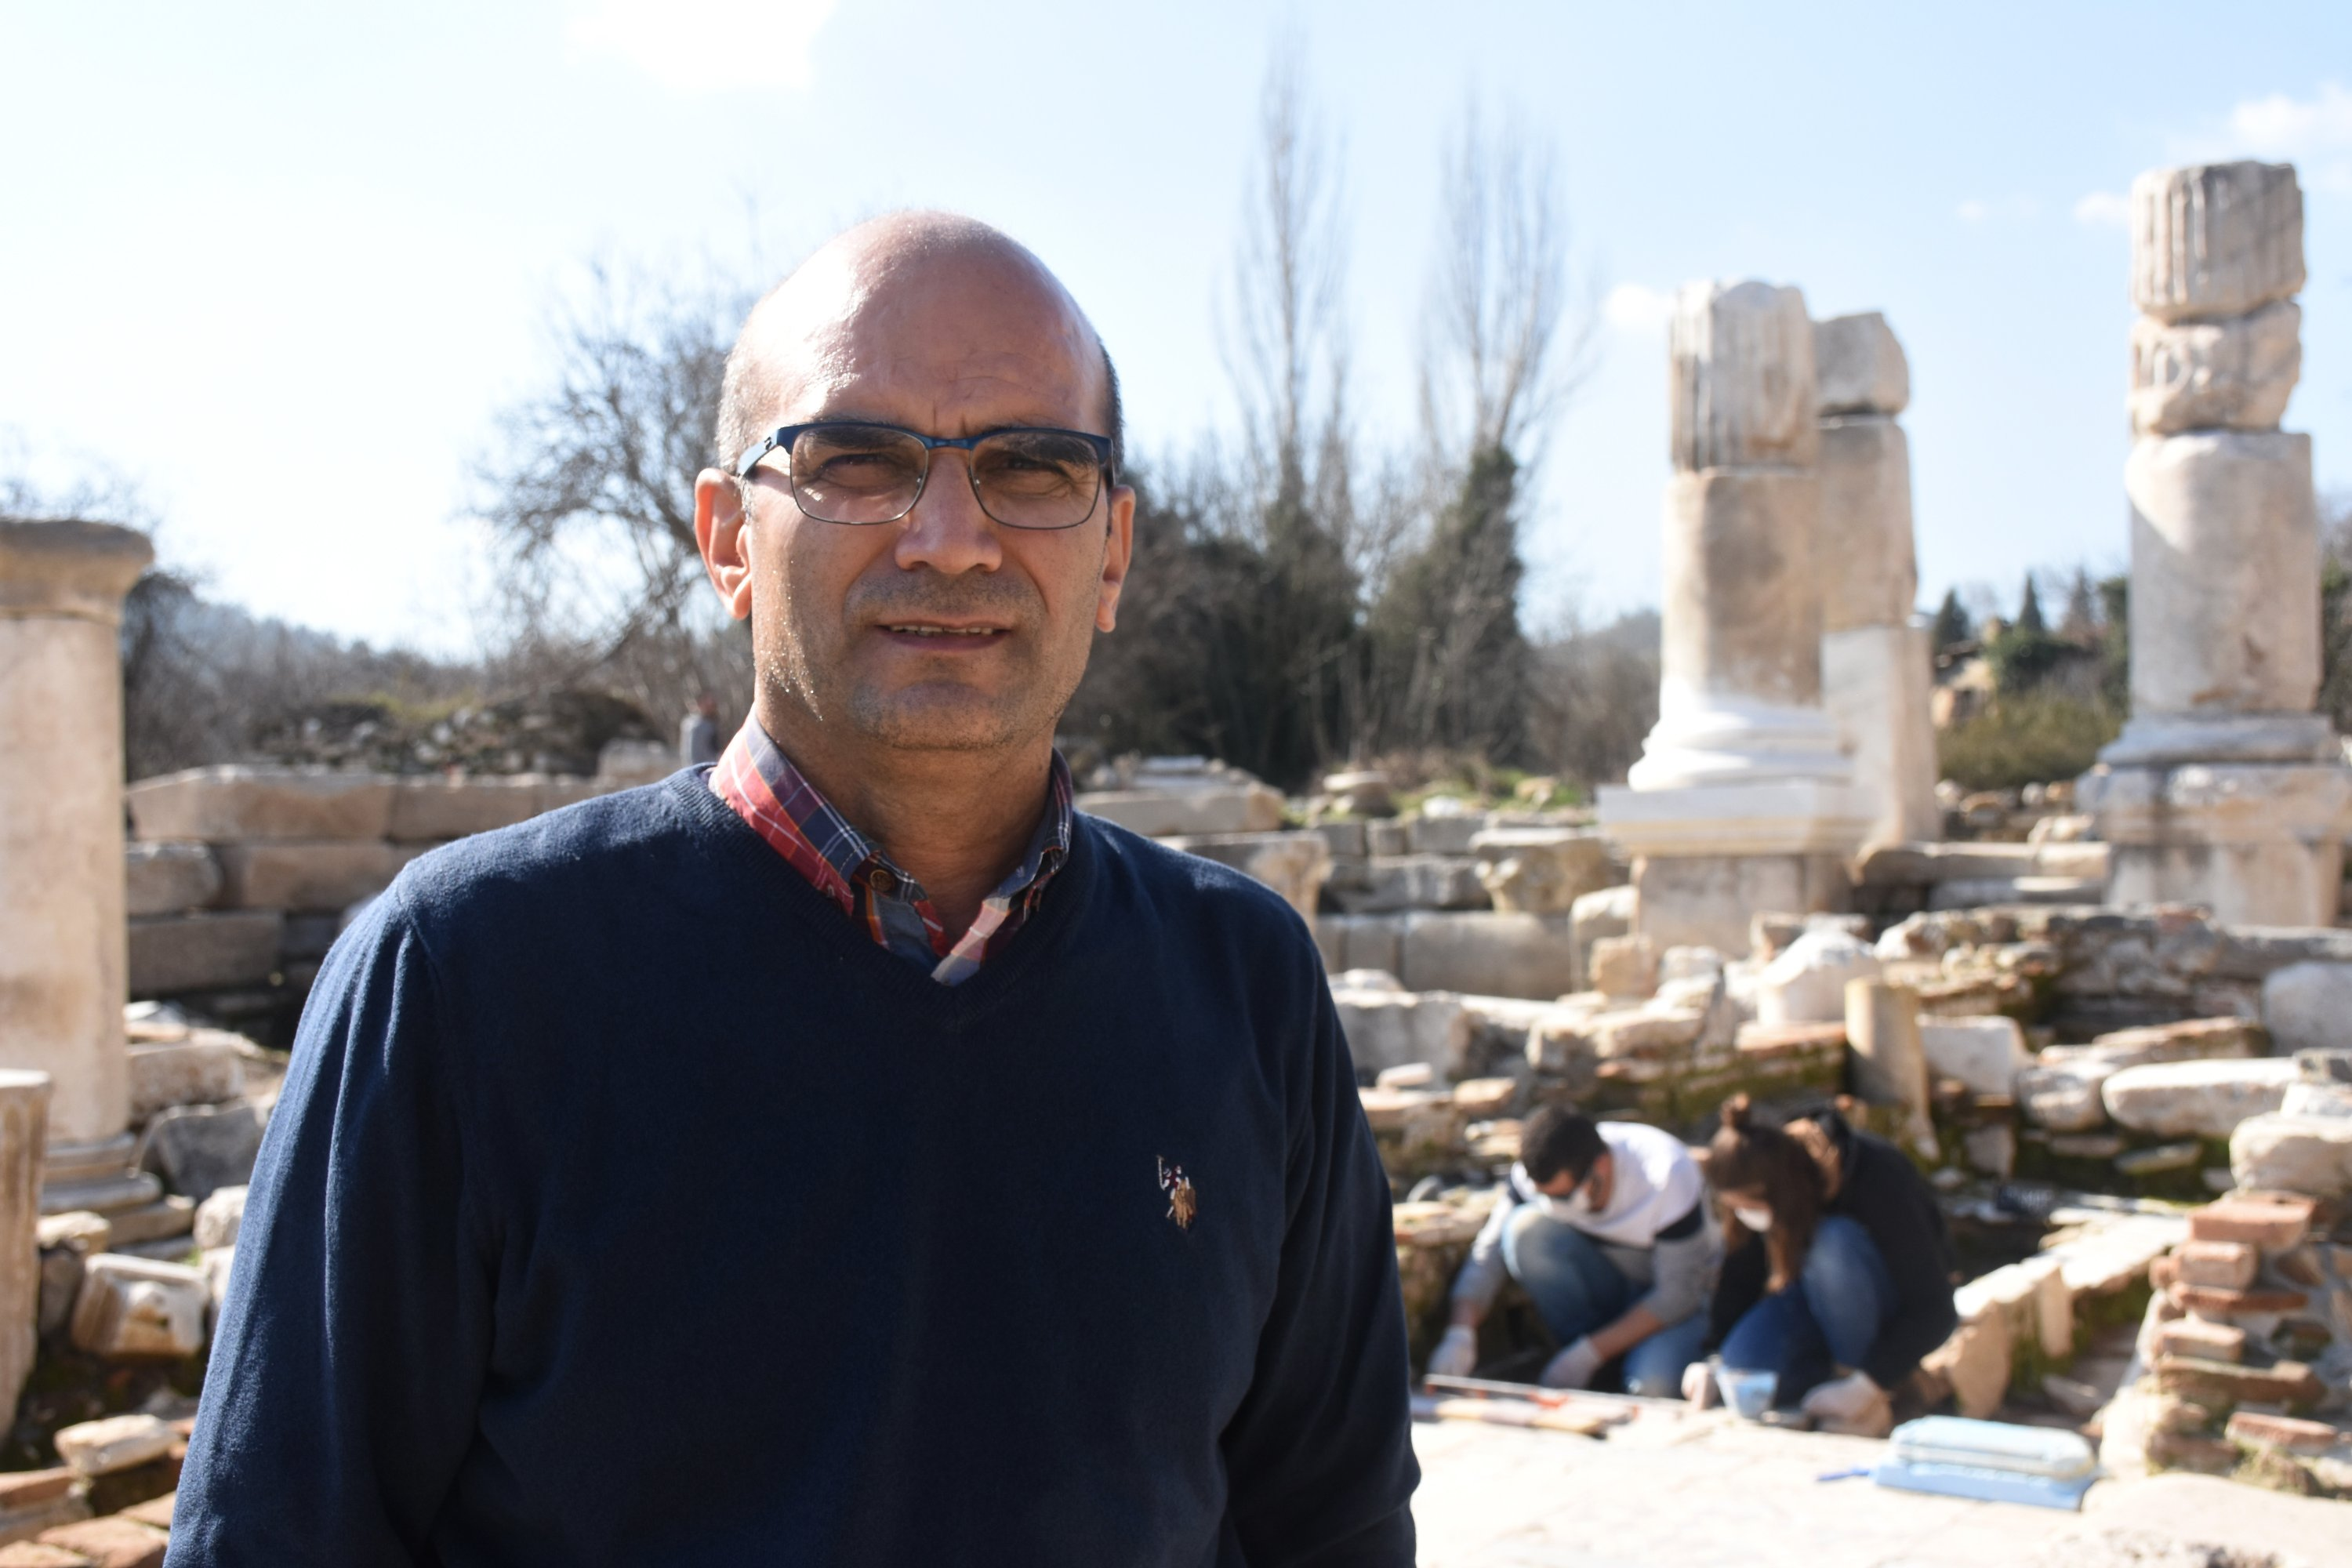 Professor Bilal Söğüt of Pamukkale University, head of excavations in Stratonikeia, stands at the ancient site while restorative work continues, Muğla, southwestern Turkey, Feb. 9, 2021. (AA Photo)